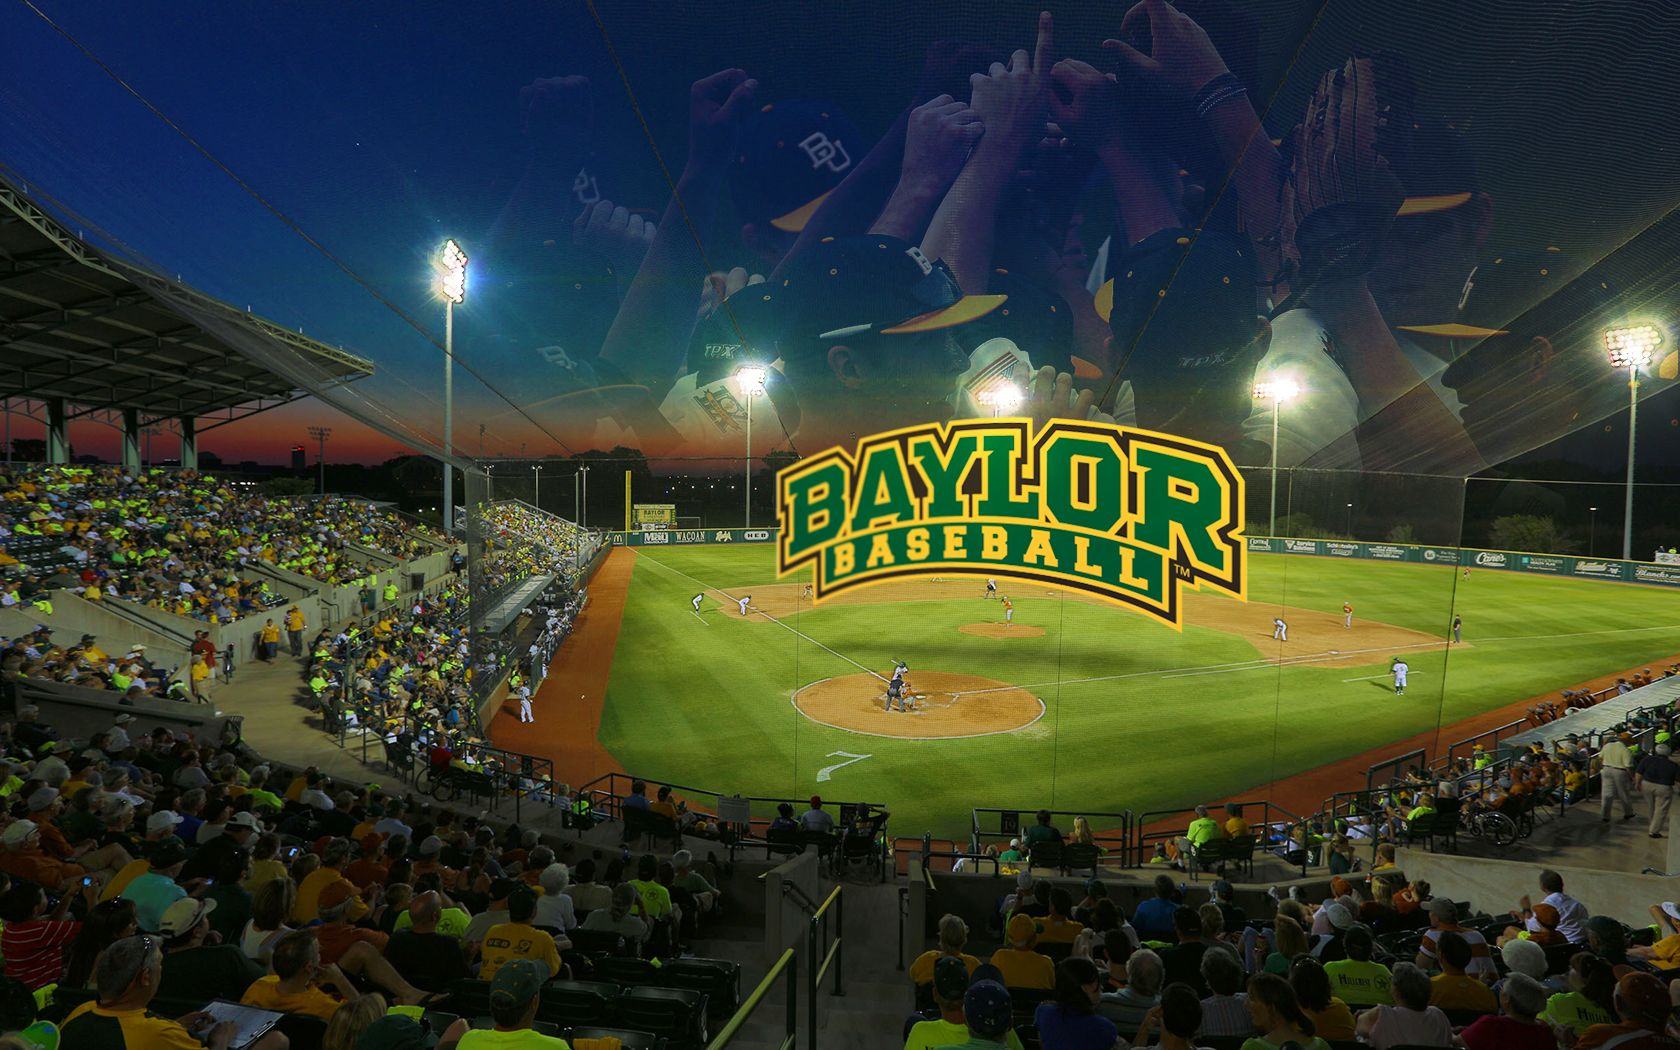 It must be spring Baylor Baseball season is here